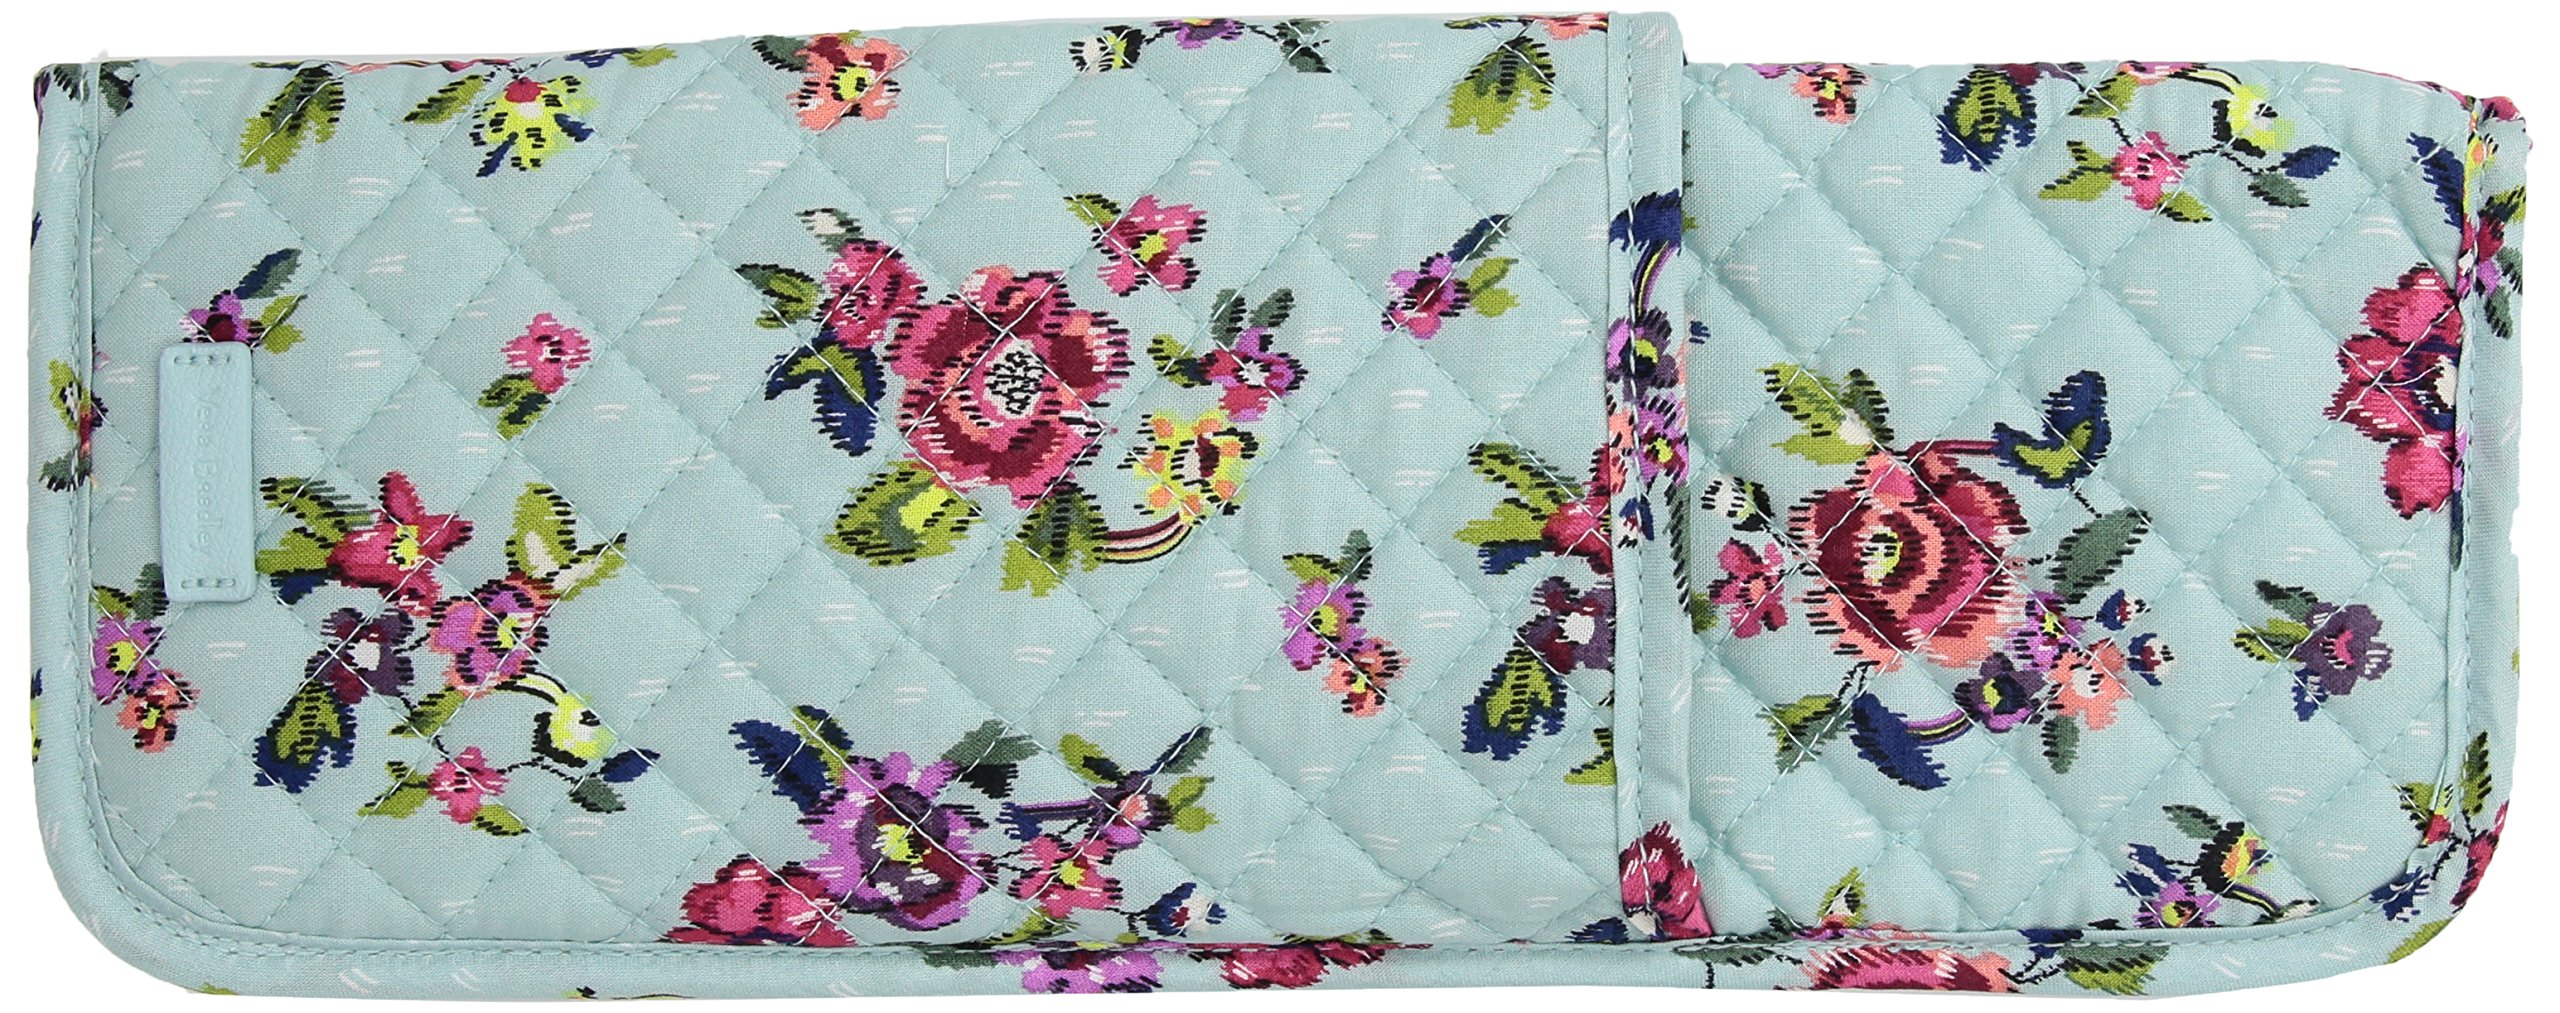 Vera Bradley Iconic Curling and Flat Iron Cover, Signature Cotton, Water Bouquet